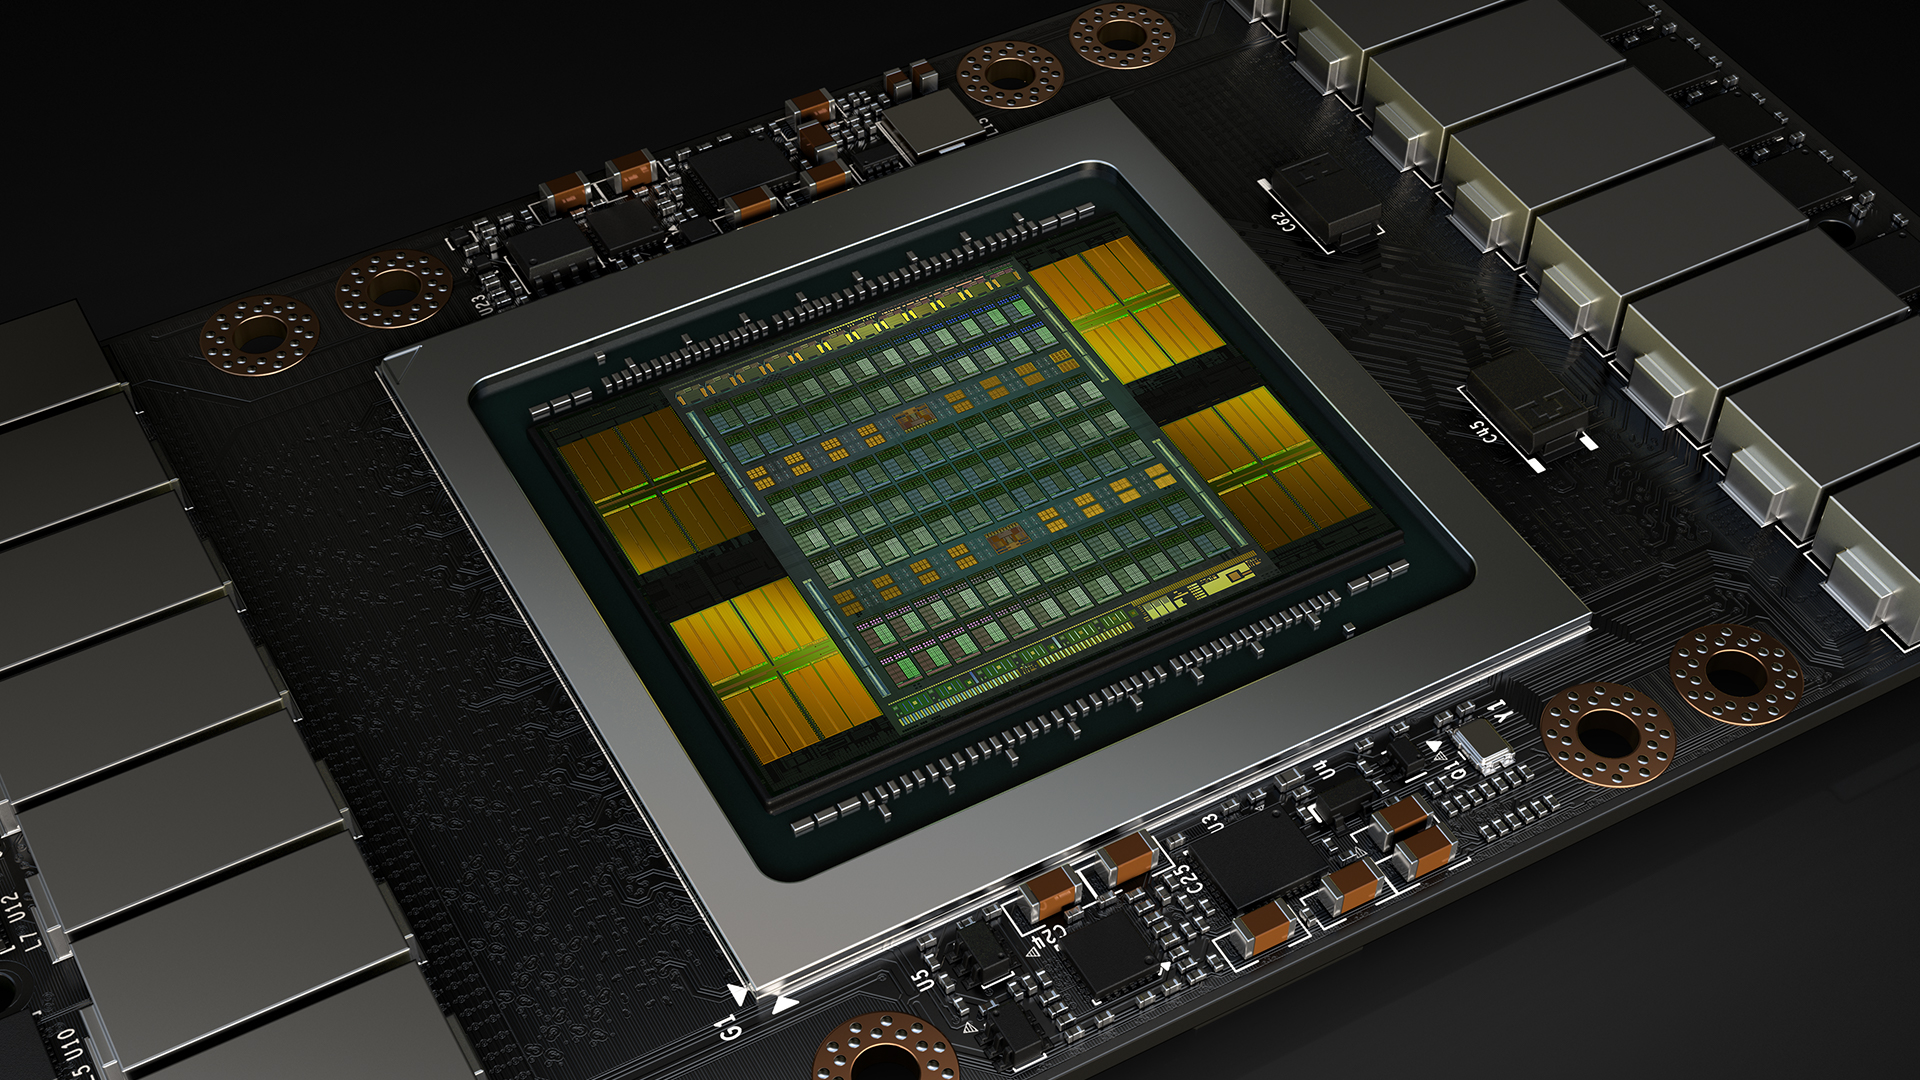 Nvidia Volta Gv100 12nm Finfet Gpu Unveiled Tesla V100 Detailed 1964 Galaxie 500 Radio Wiring Diagram Artificial Intelligence Is Driving The Greatest Technology Advances In Human History Said Jensen Huang Founder And Chief Executive Officer Of